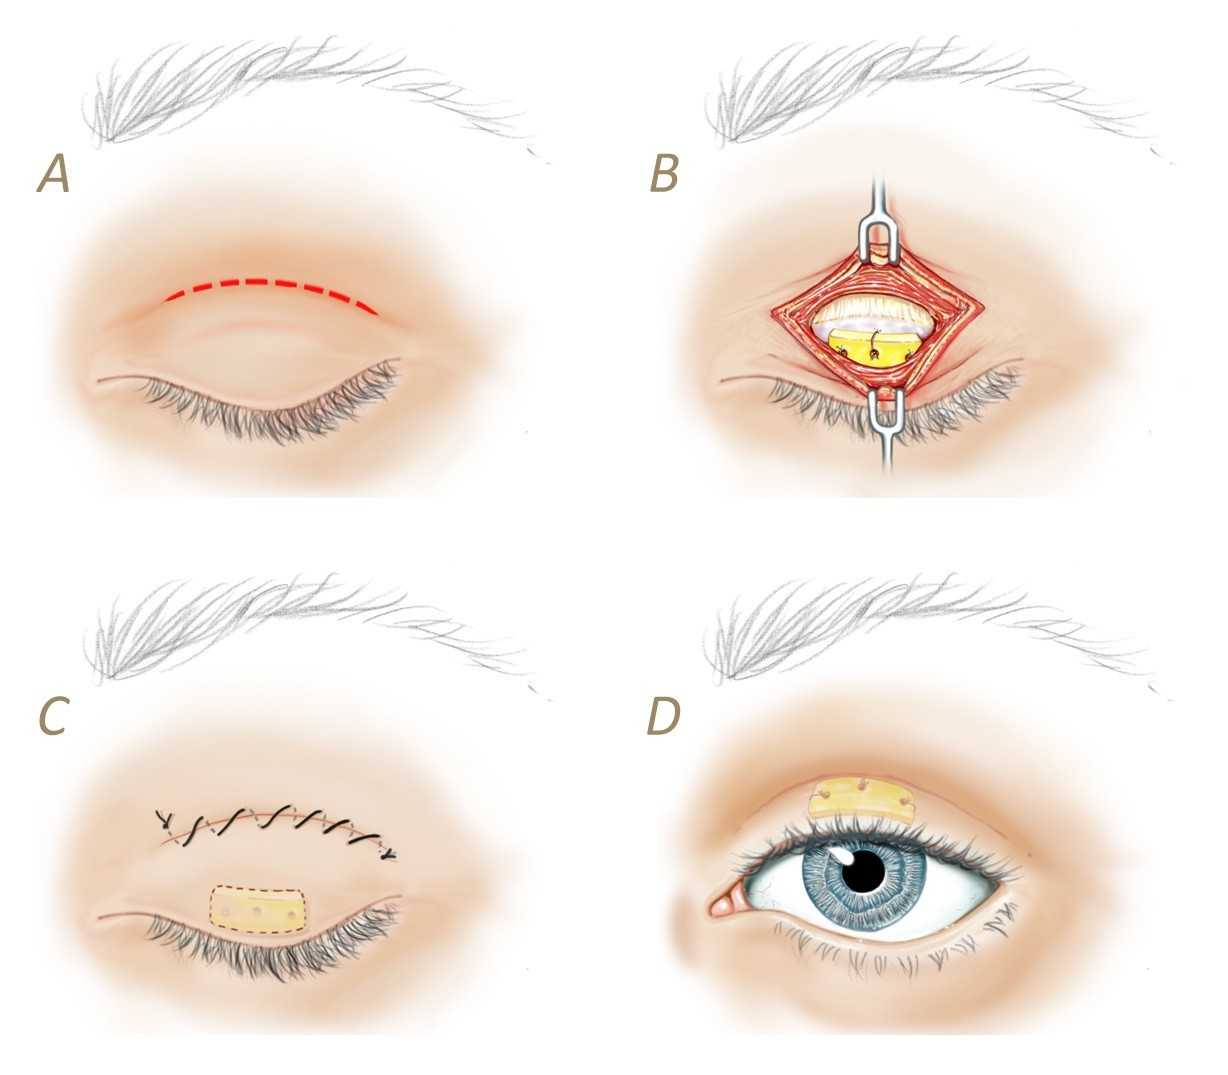 how does facial paralysis affect the eyes